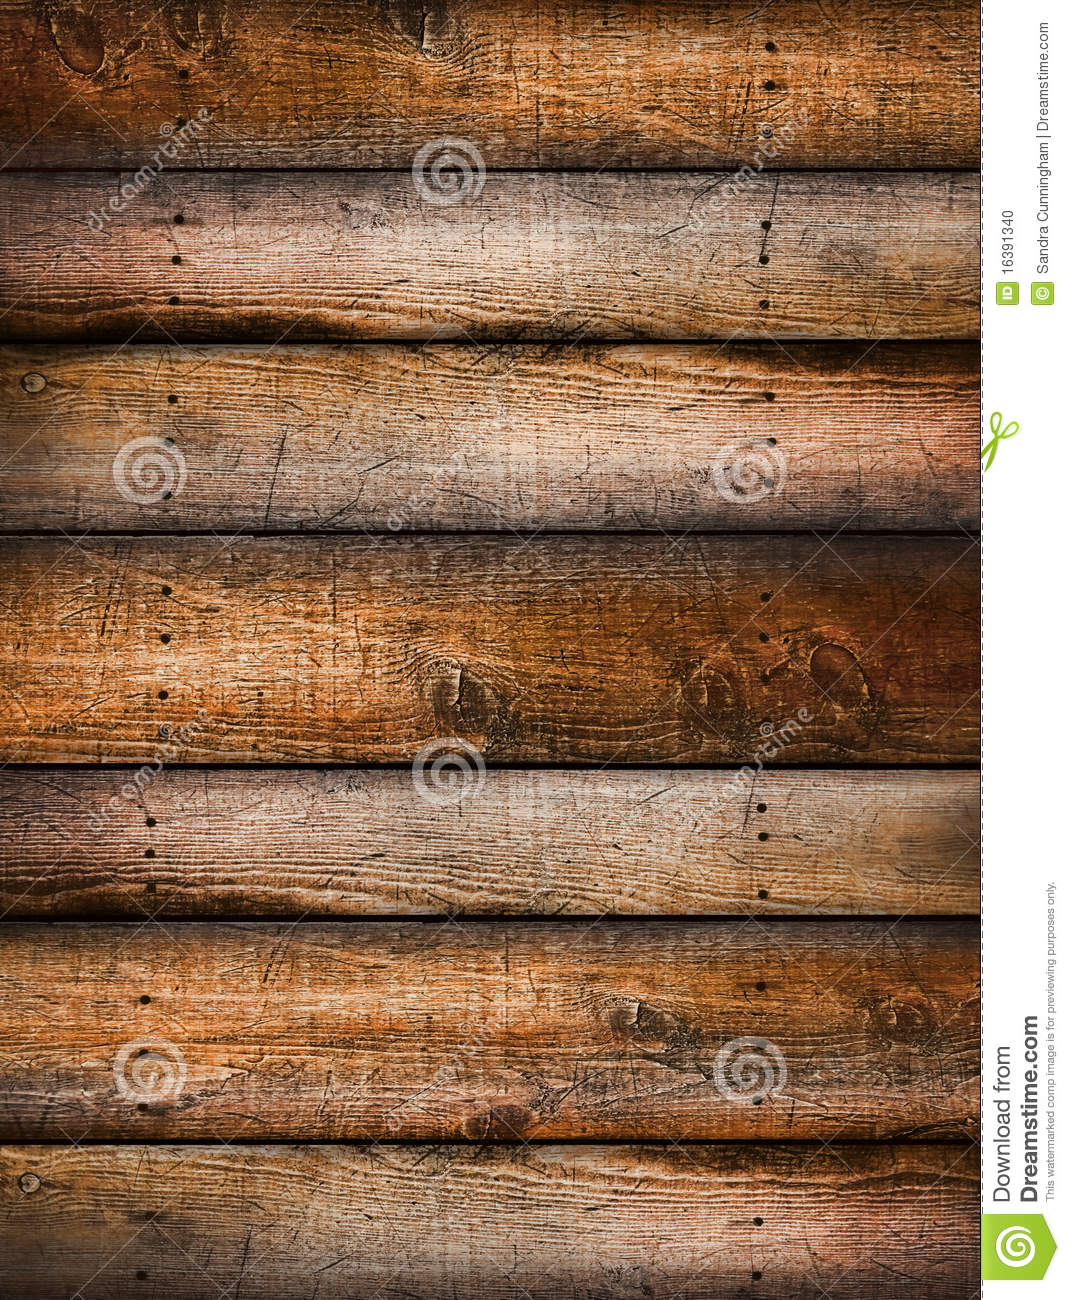 Distressed Pine Wood Grain Background Stock Photo Image 16391340